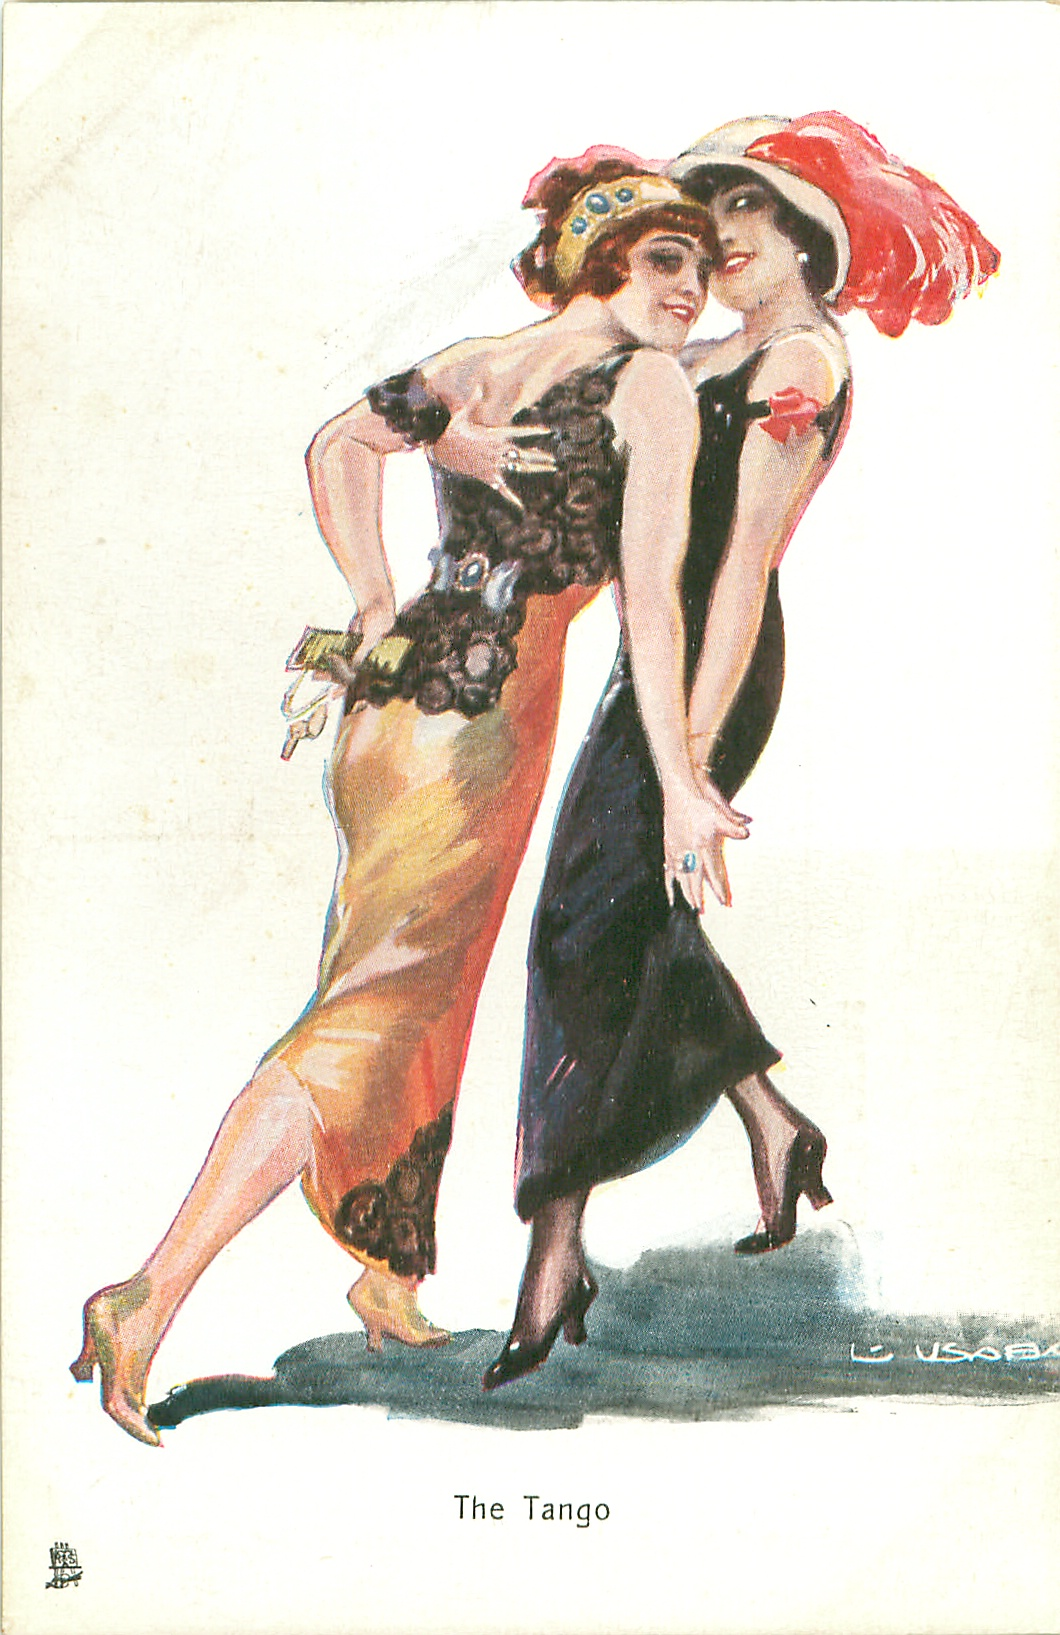 Women dancing 'The Tango' one of a set of early 20th century postcards, 1913?